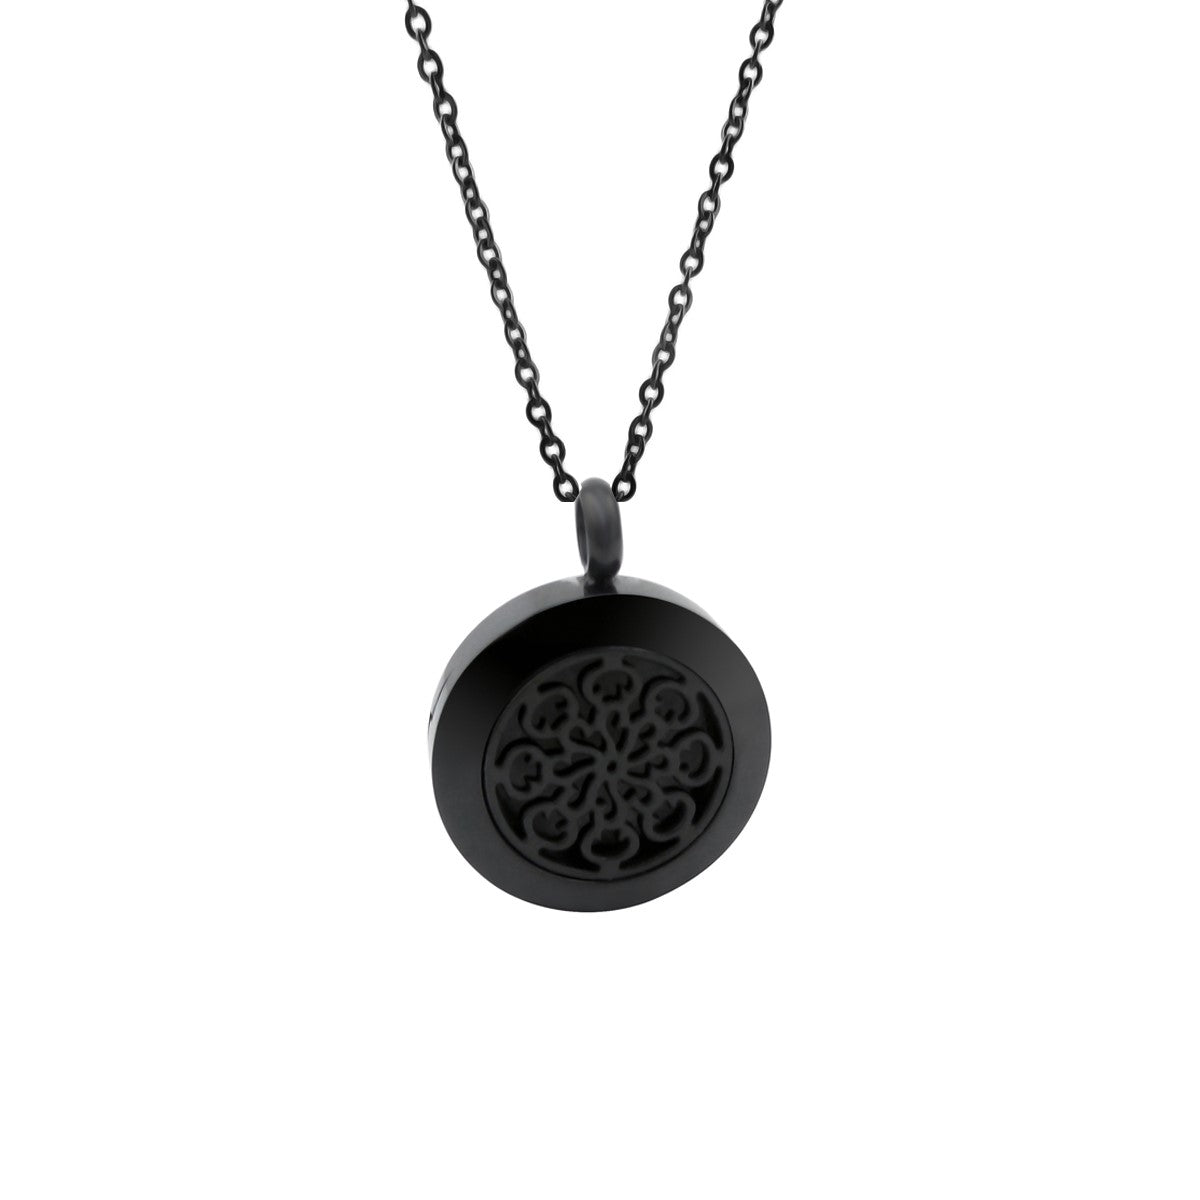 Essential Oil Diffuser Necklace - Small Spiral Pattern- Black